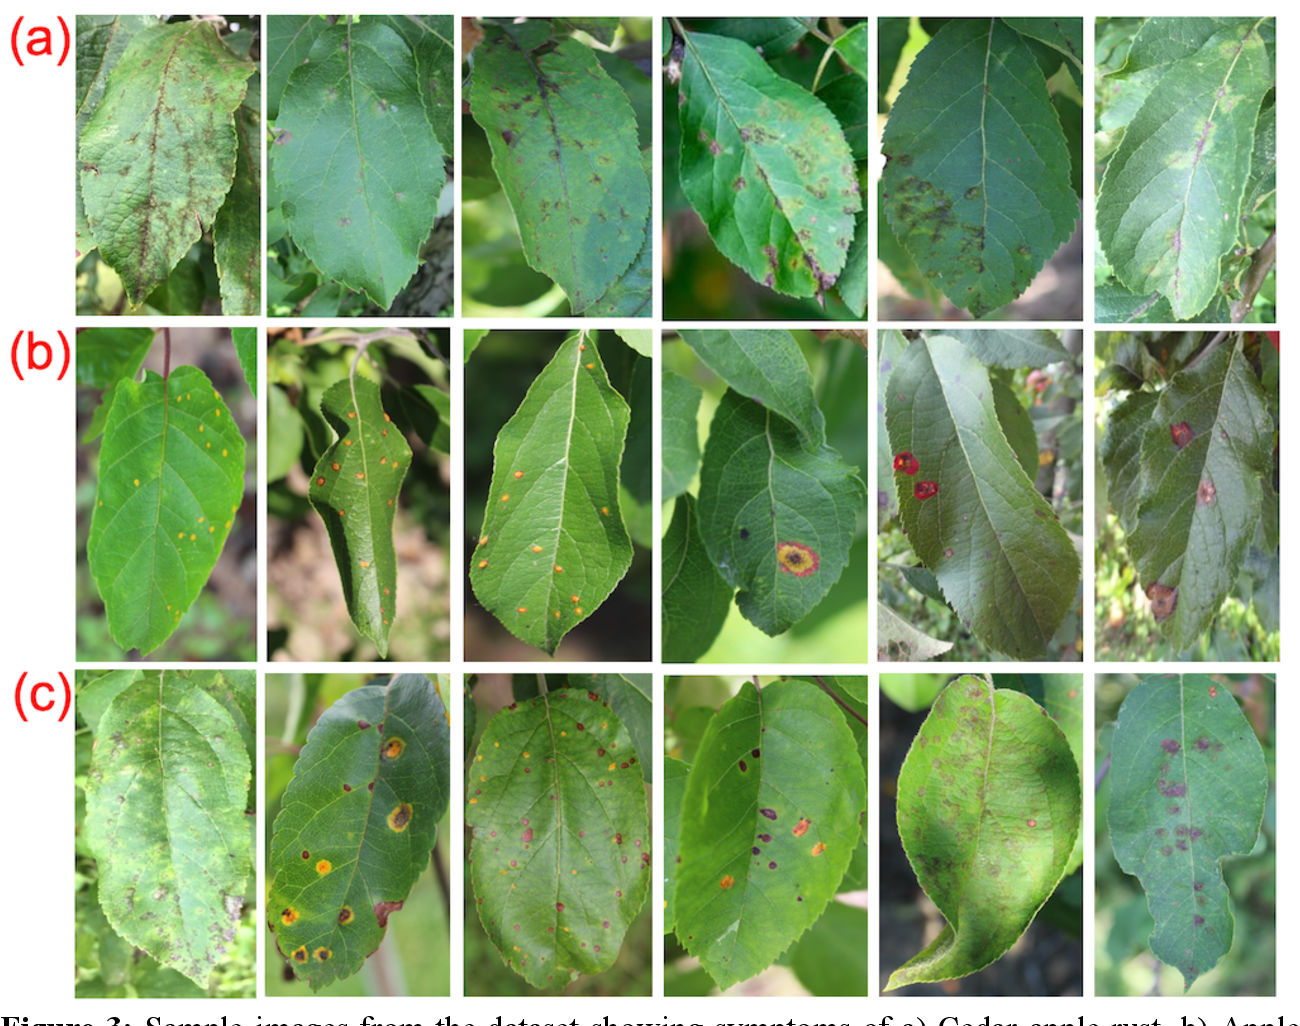 Figure 3 for The Plant Pathology 2020 challenge dataset to classify foliar disease of apples